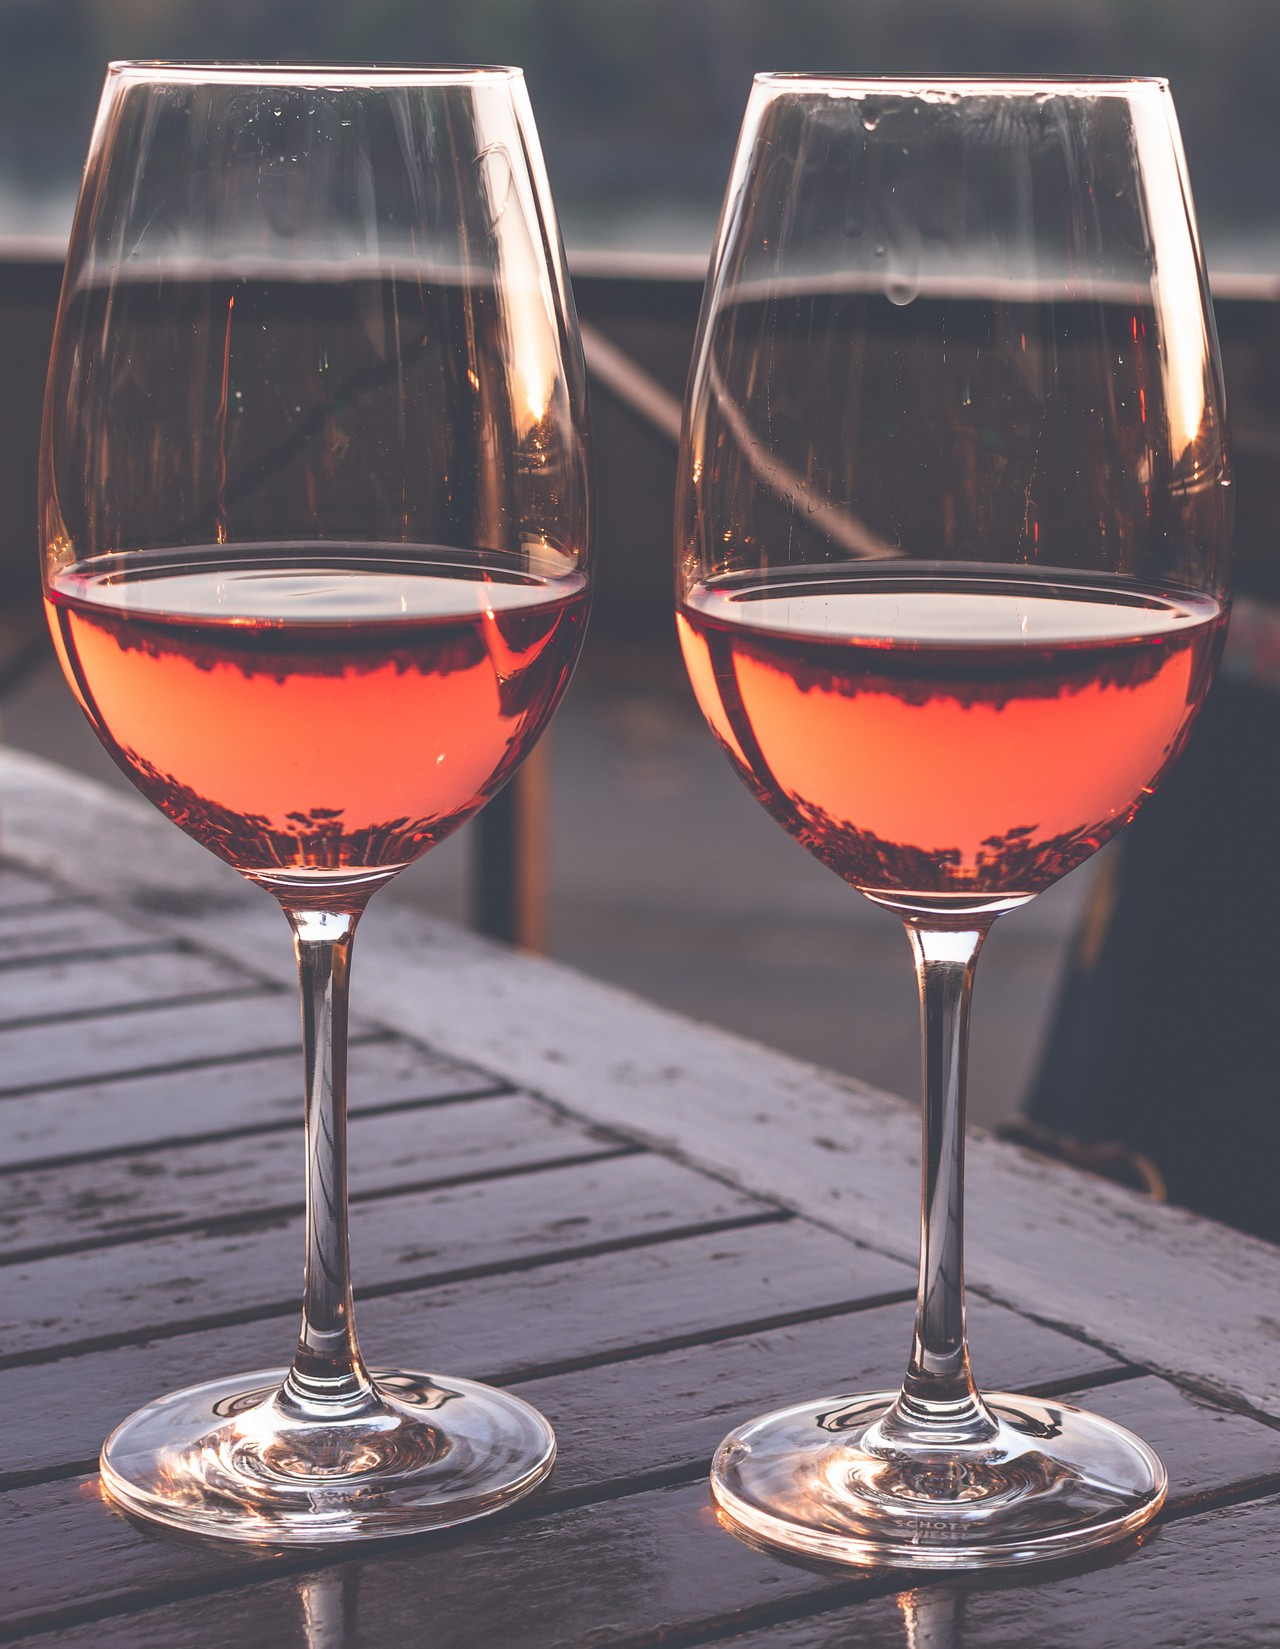 Two Glass of Vine in the Sunset 2